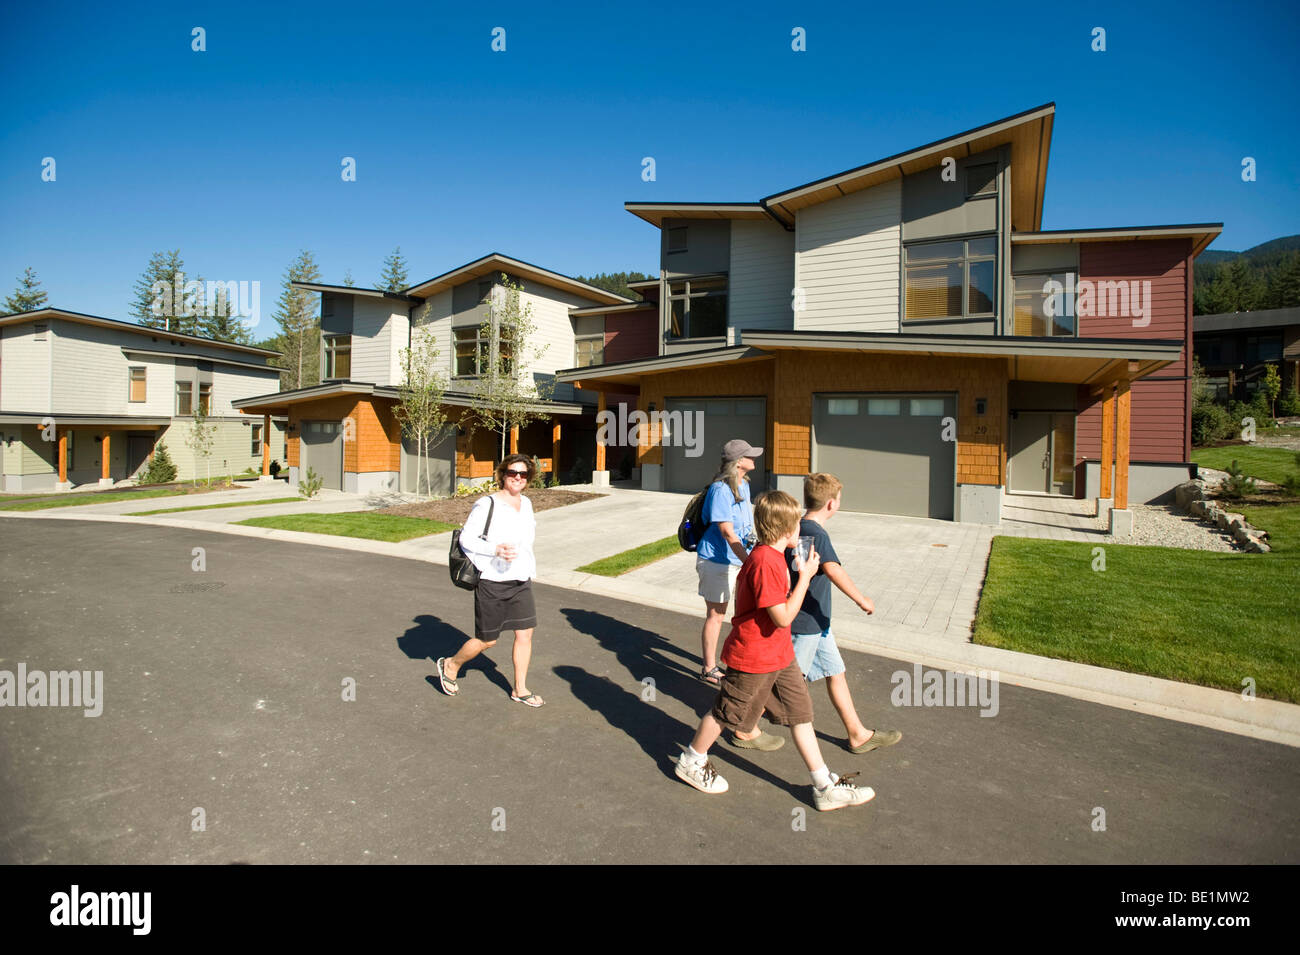 A Family walks through the 2010 Olympic Athlete's Village.  Whistler BC, Canada - Stock Image